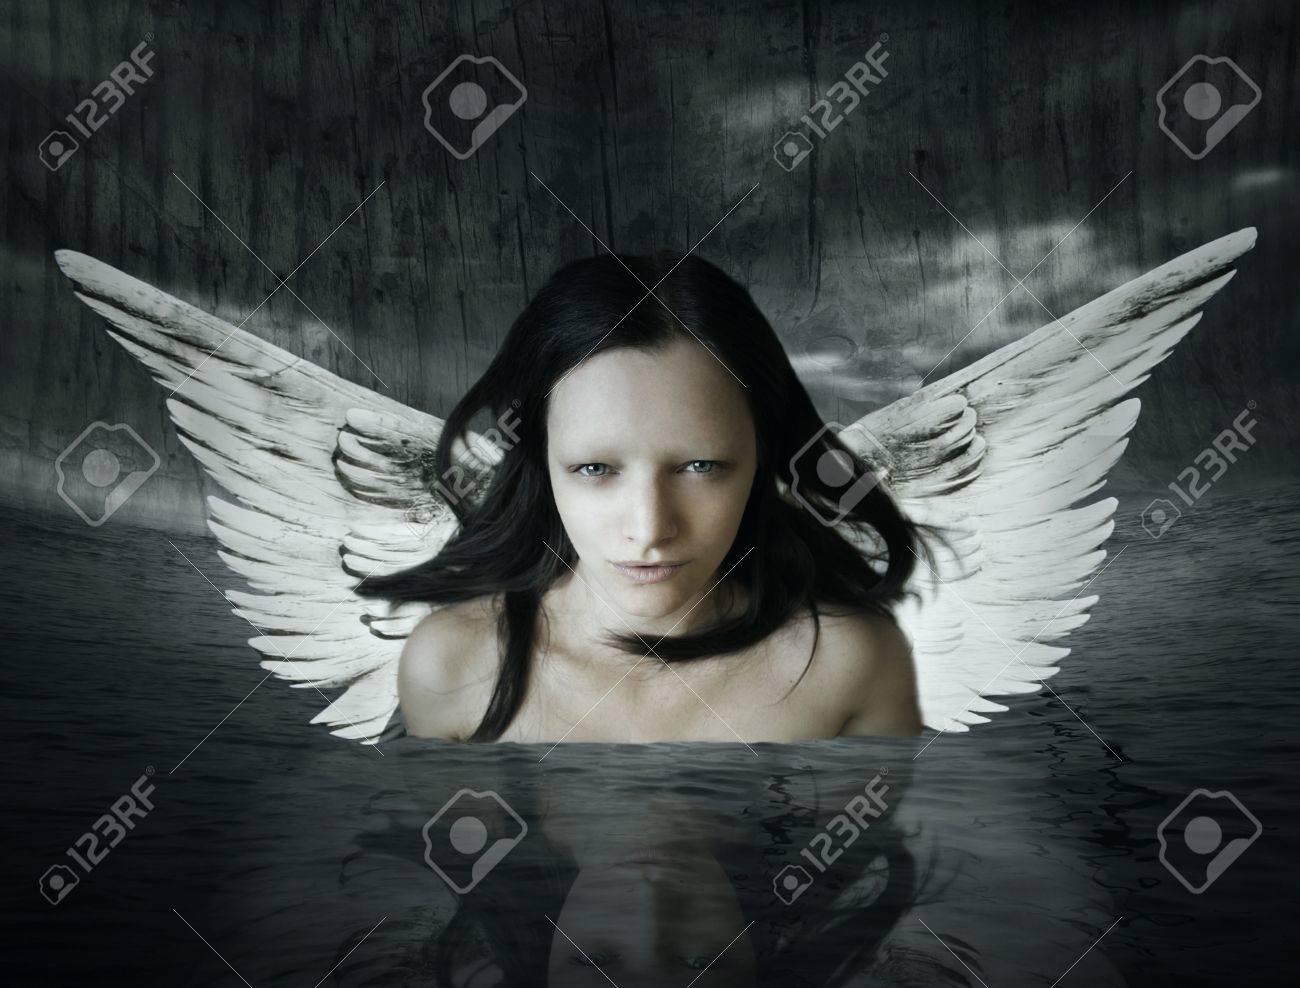 Angelic being that comes out of the water in a setting dark background - 15862756